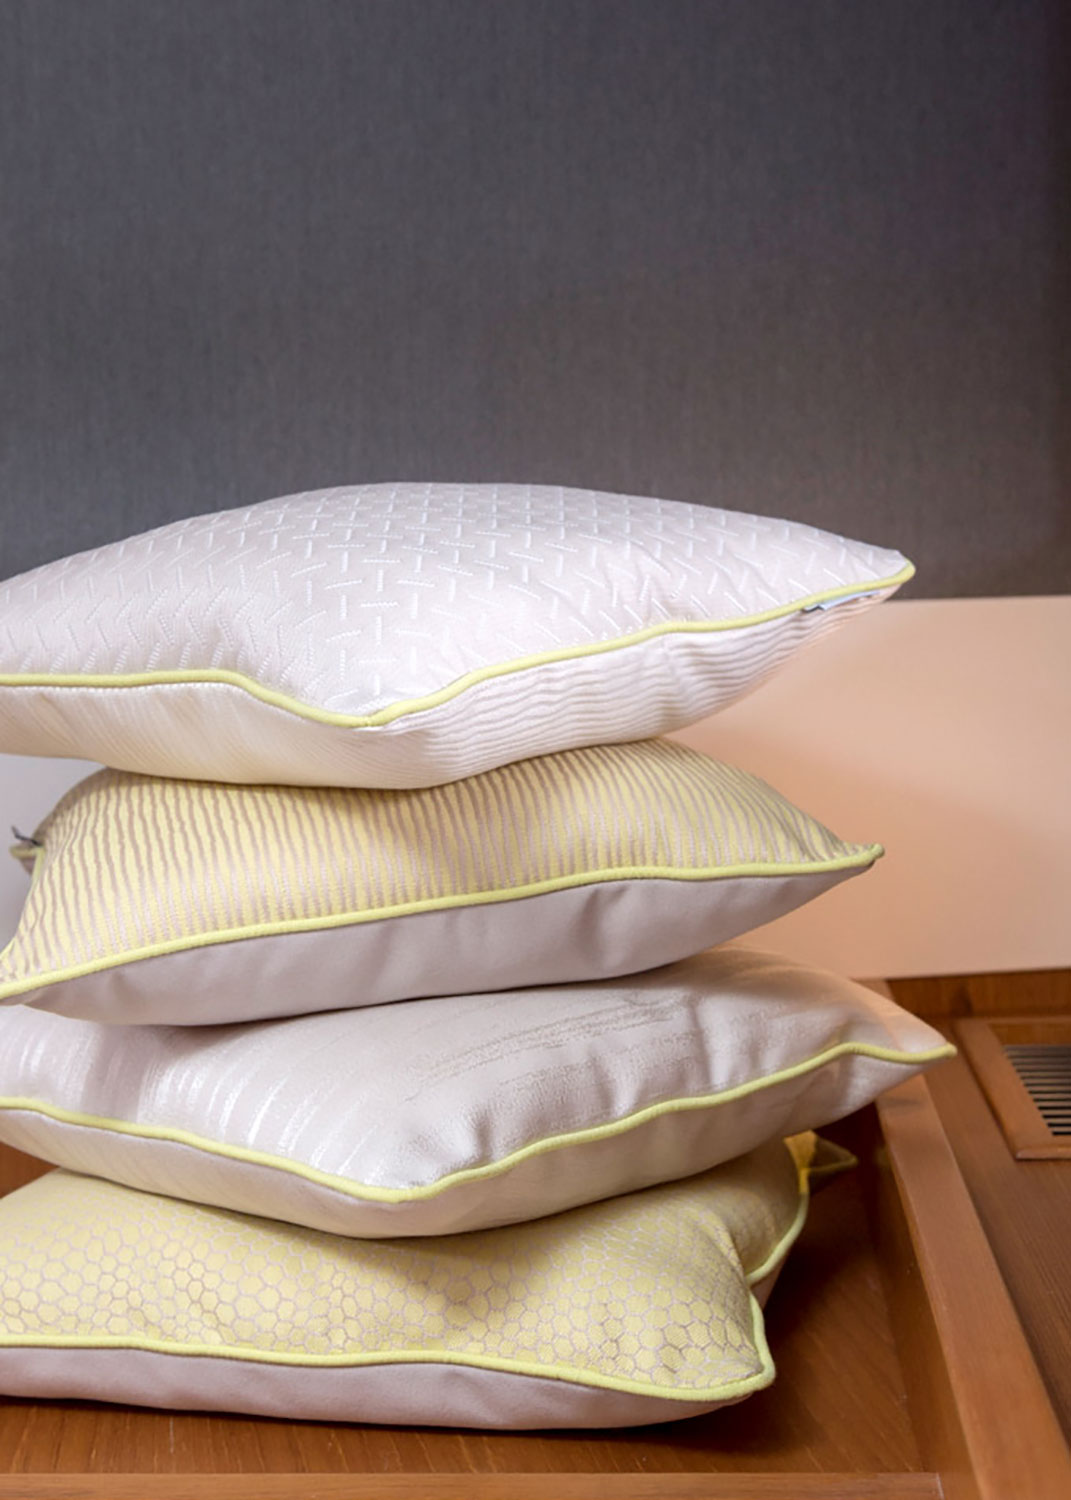 Stacked pillows made using beige and yellow Sunbrella fabrics.